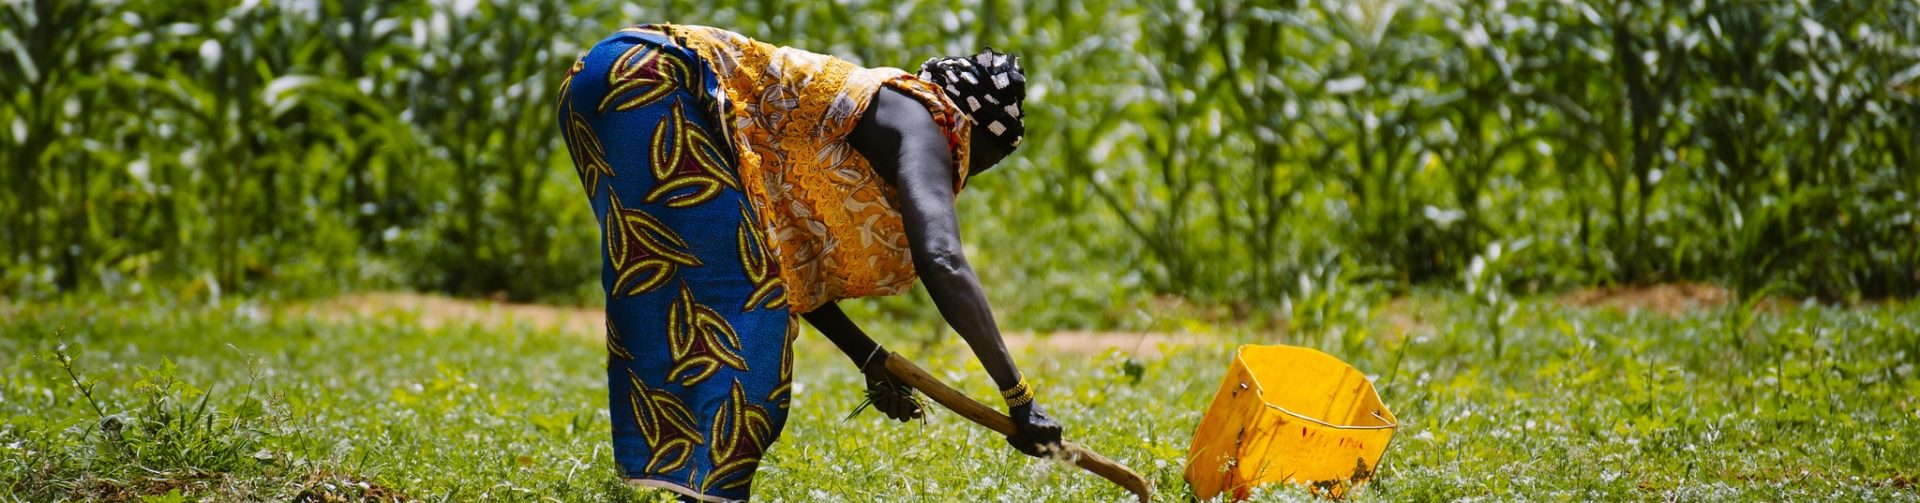 Considering gender in irrigation: Technology adoption for